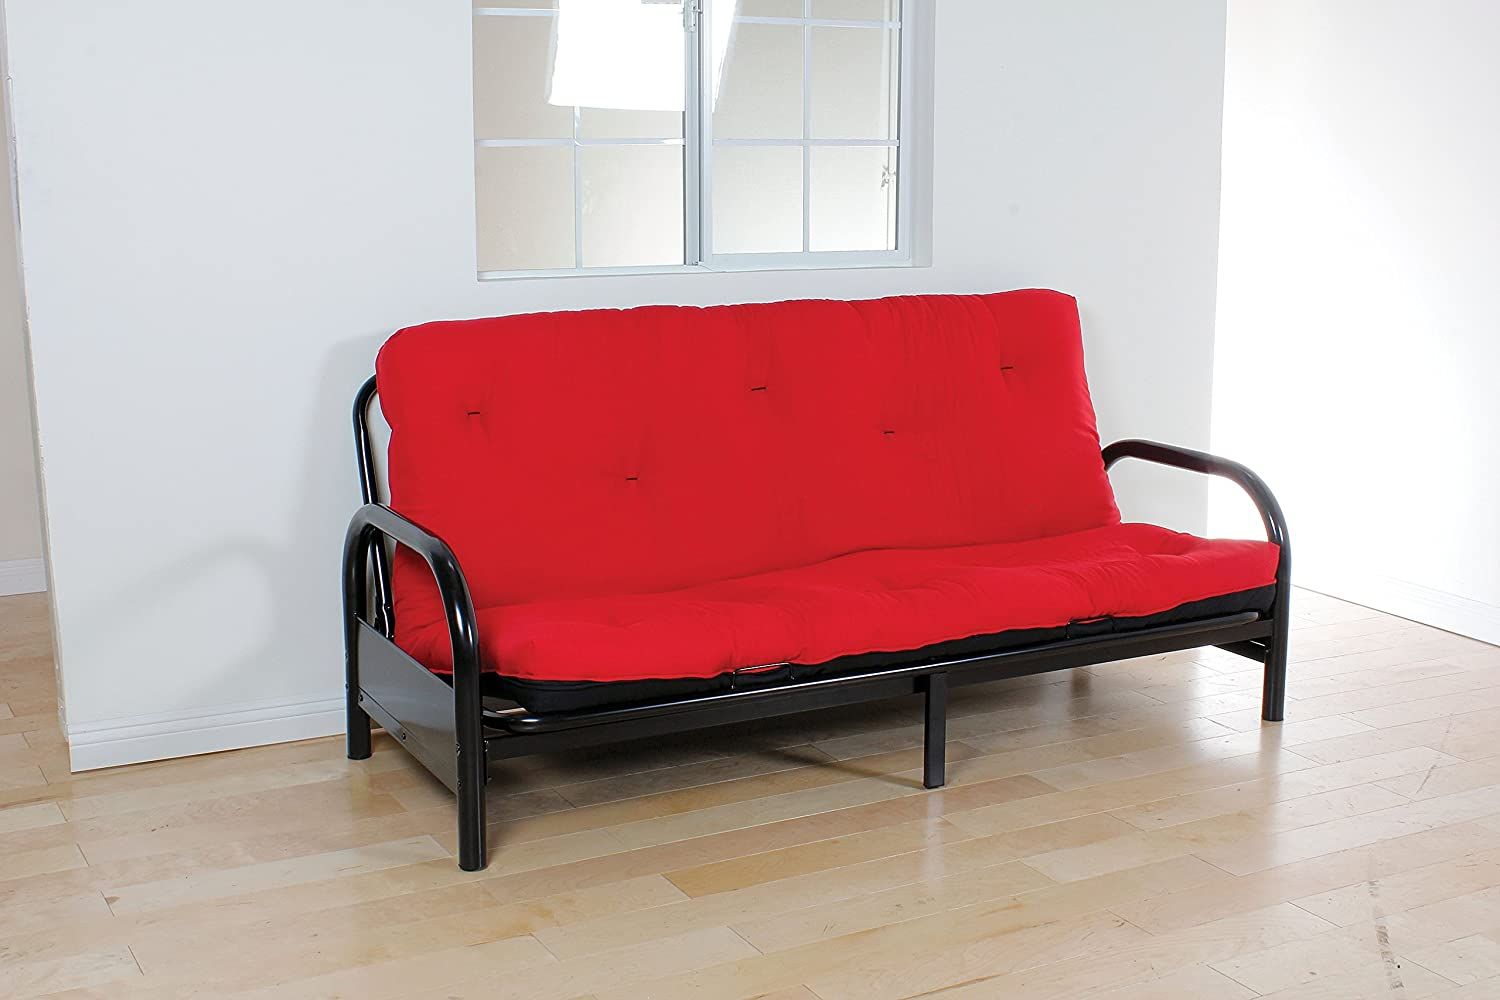 ACME 02812 8-Inch Futon Mattress, Full, Red/Black Acme Furniture